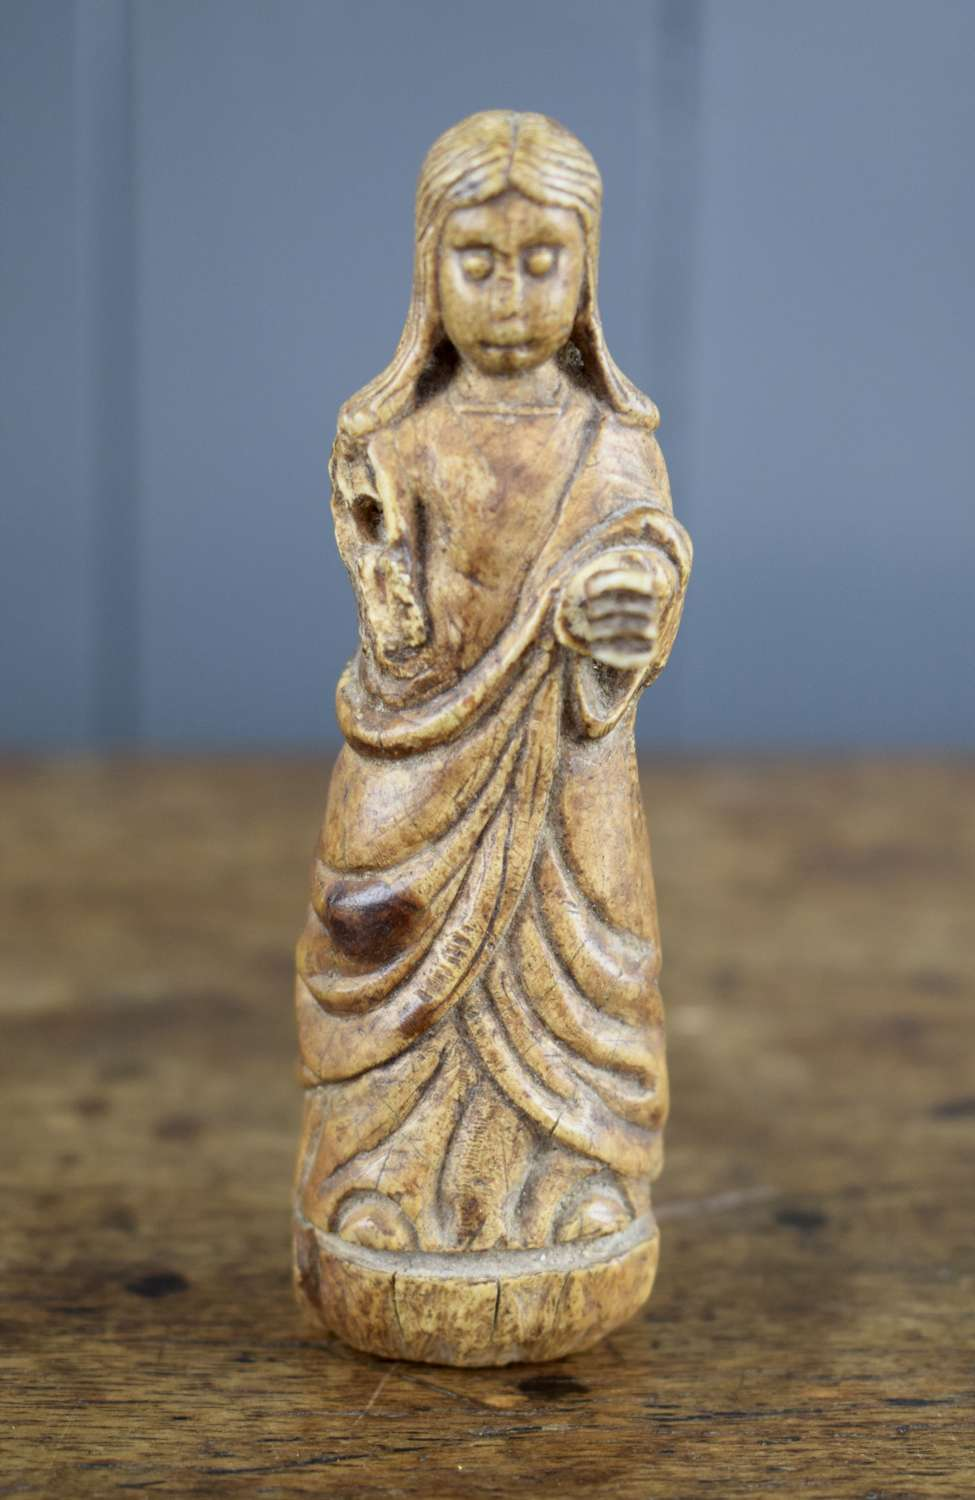 Medieval Ivory Carving of The Virgin Mary